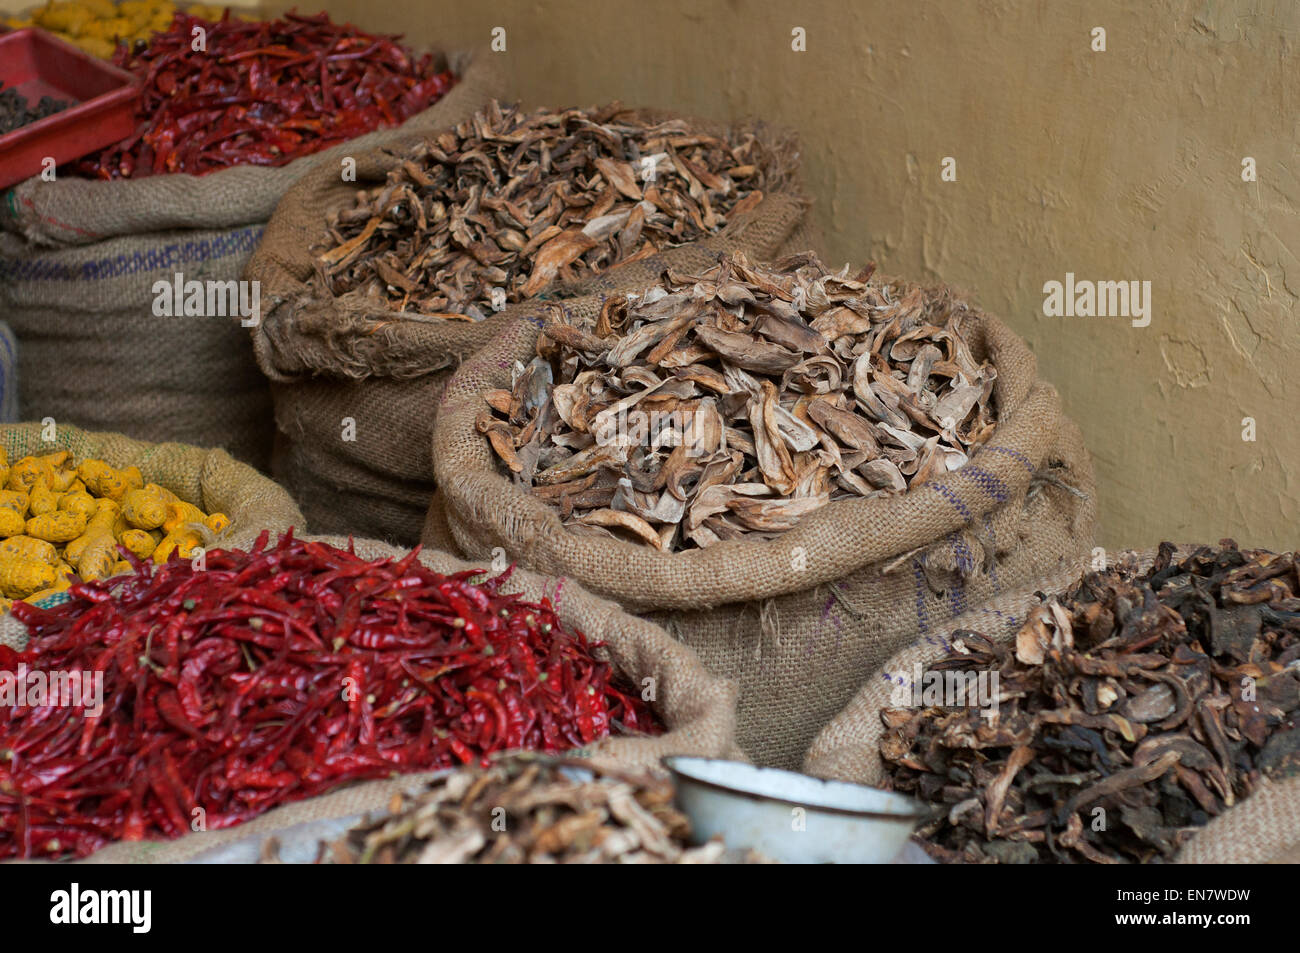 Sacks of dried foods at the market - Stock Image